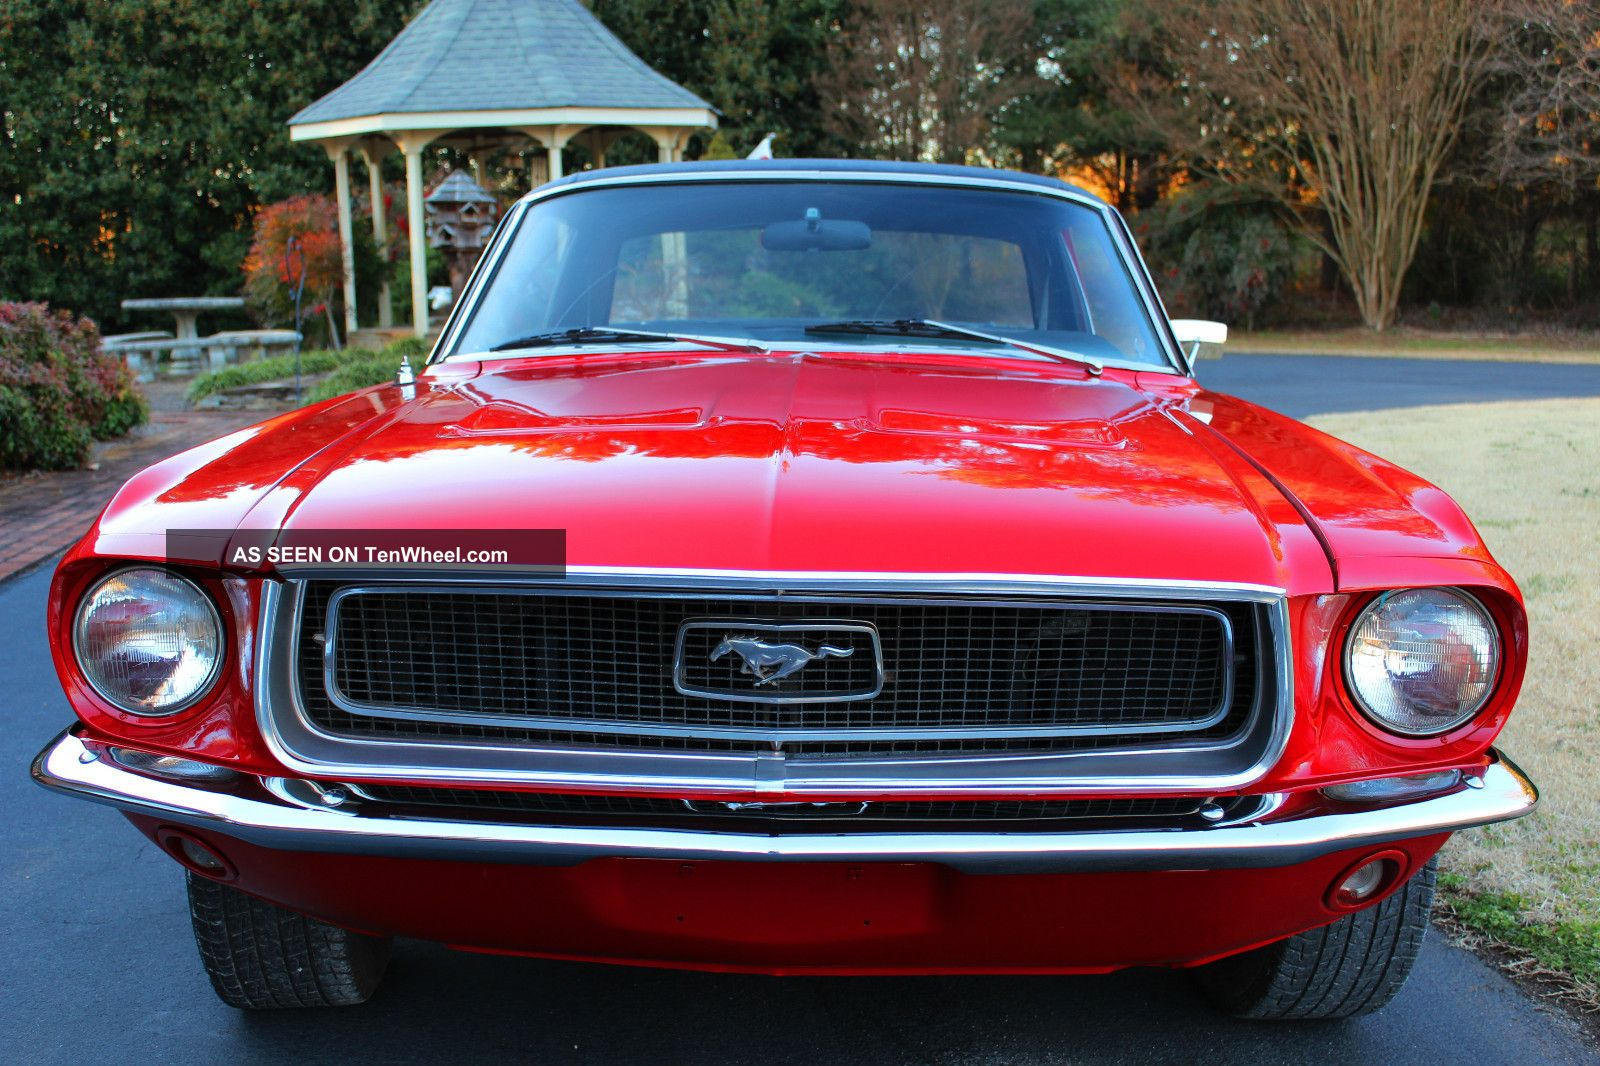 Mustang Great Candy Apple Red Paint No Rust Problems Lgw on Ford 4 6 Engine Problems